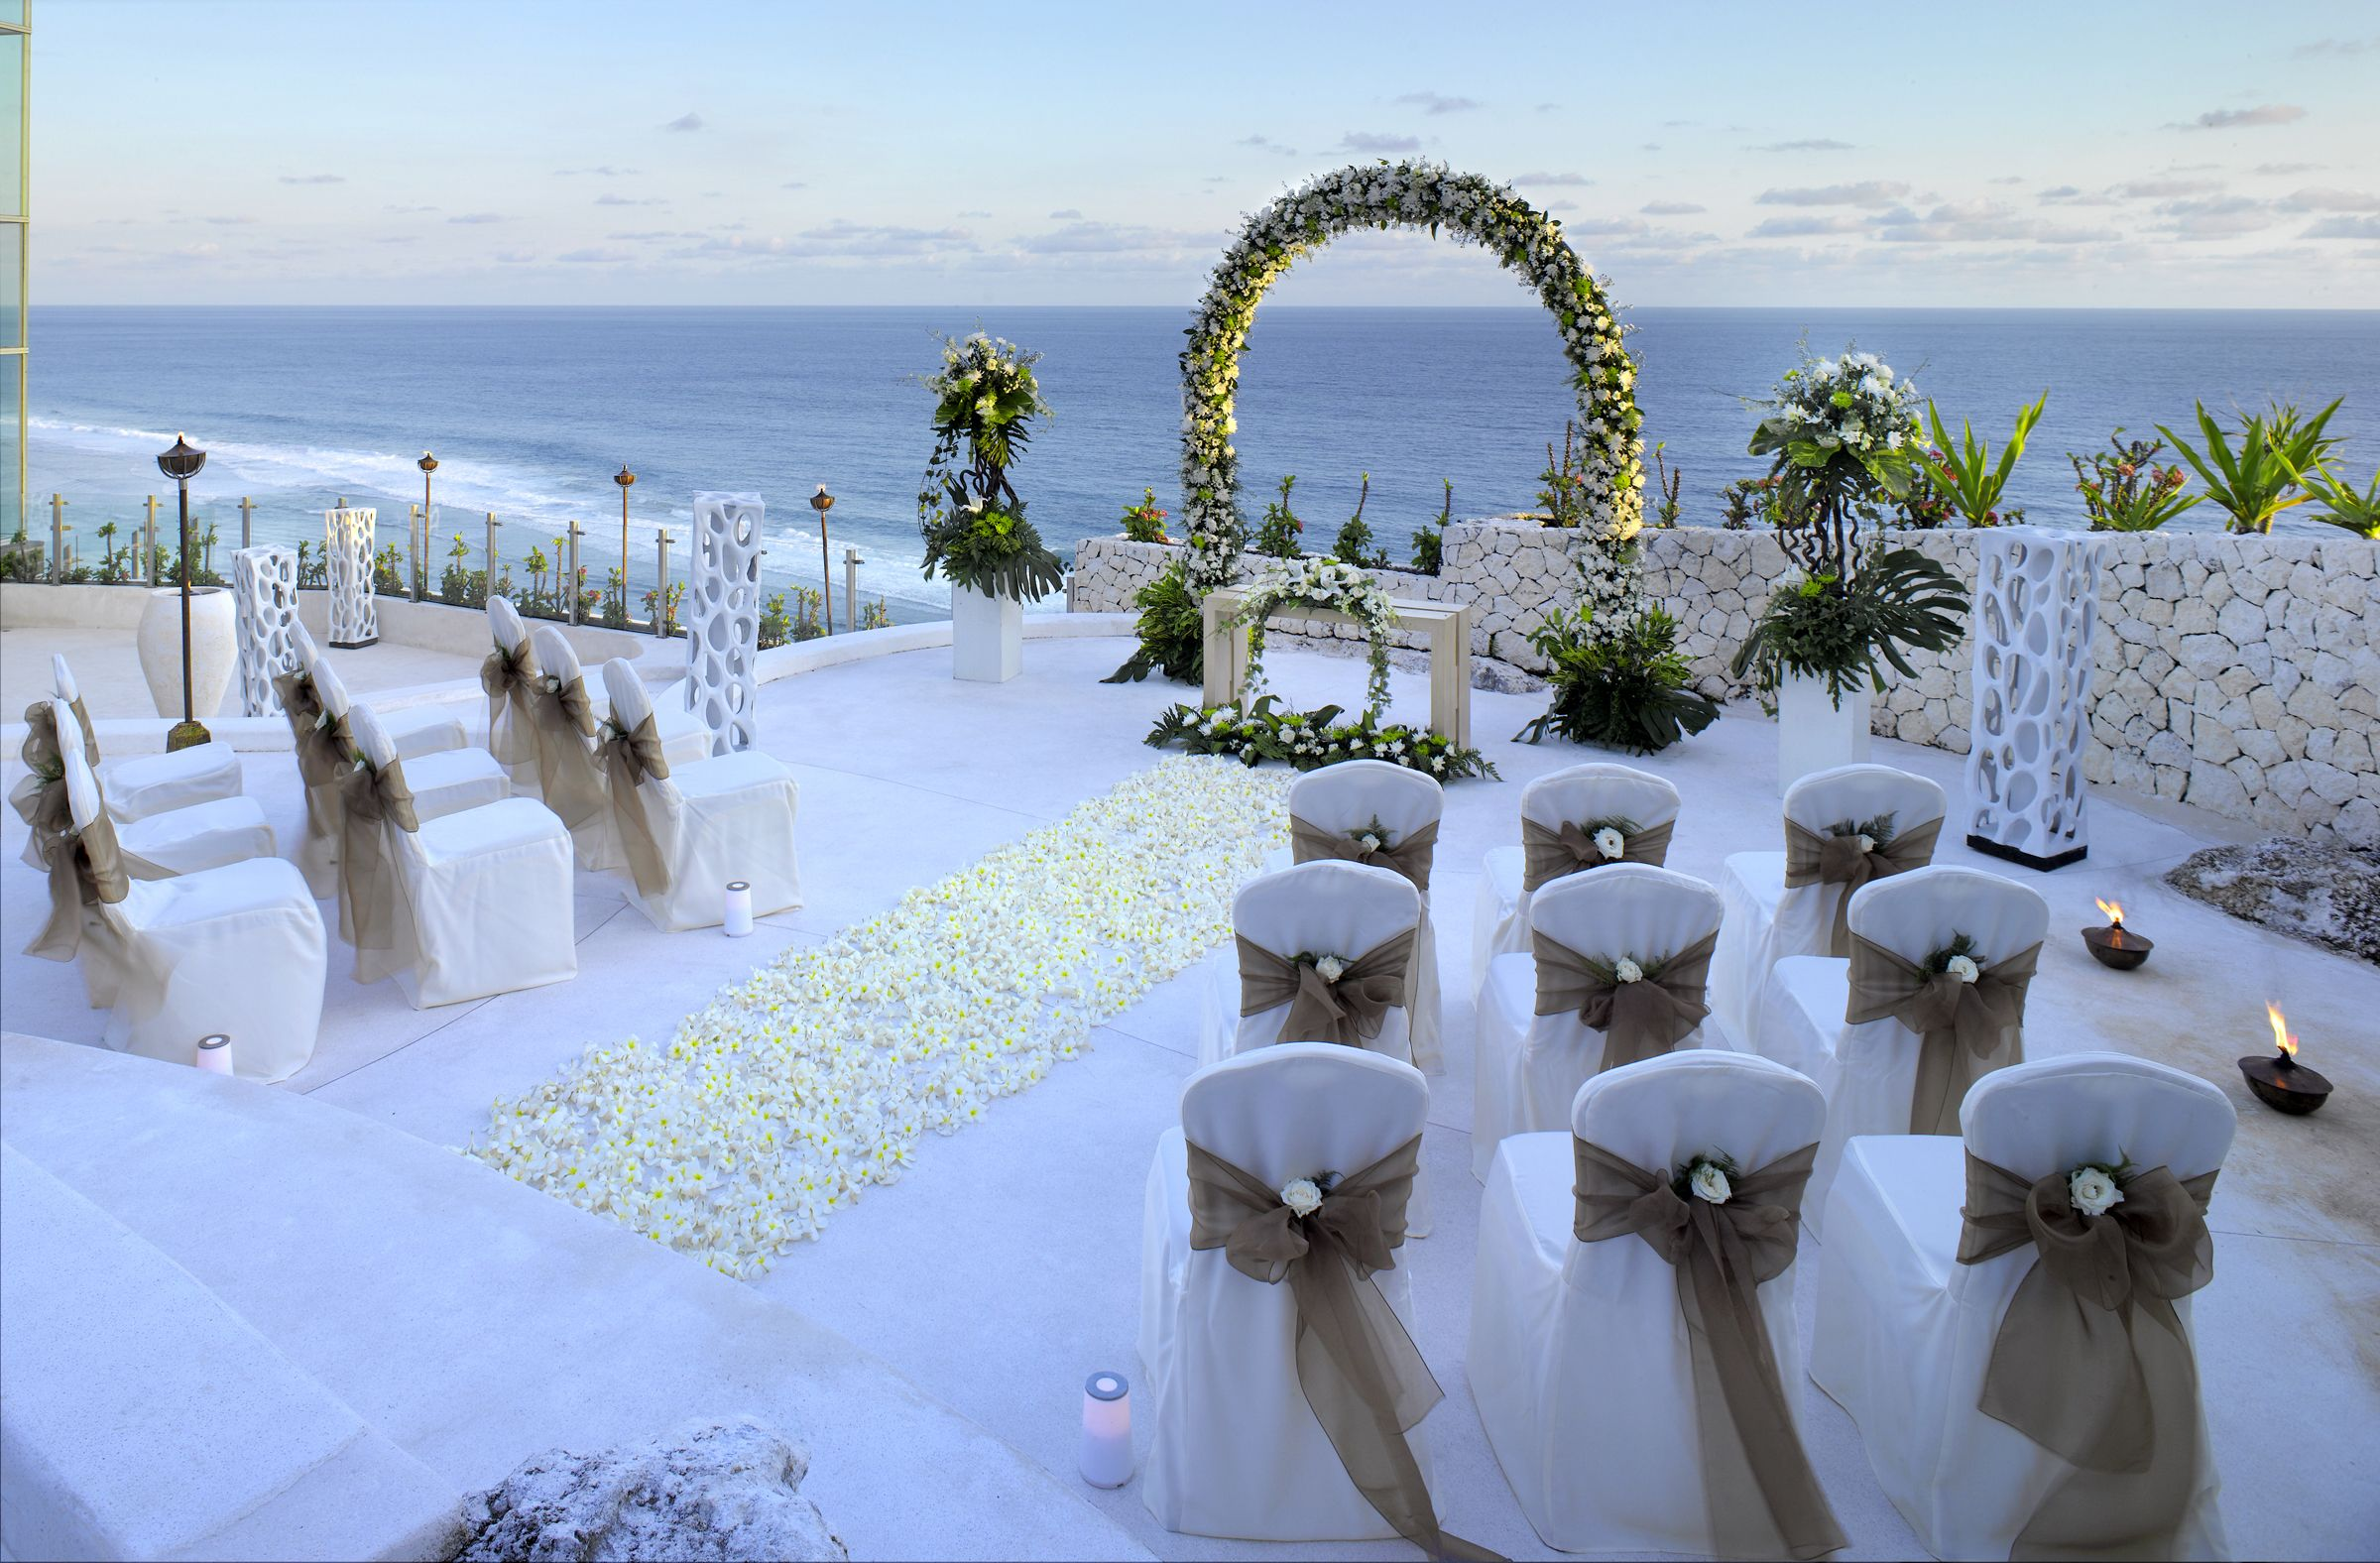 Bali Wedding Ceremony Set Up Inspiration